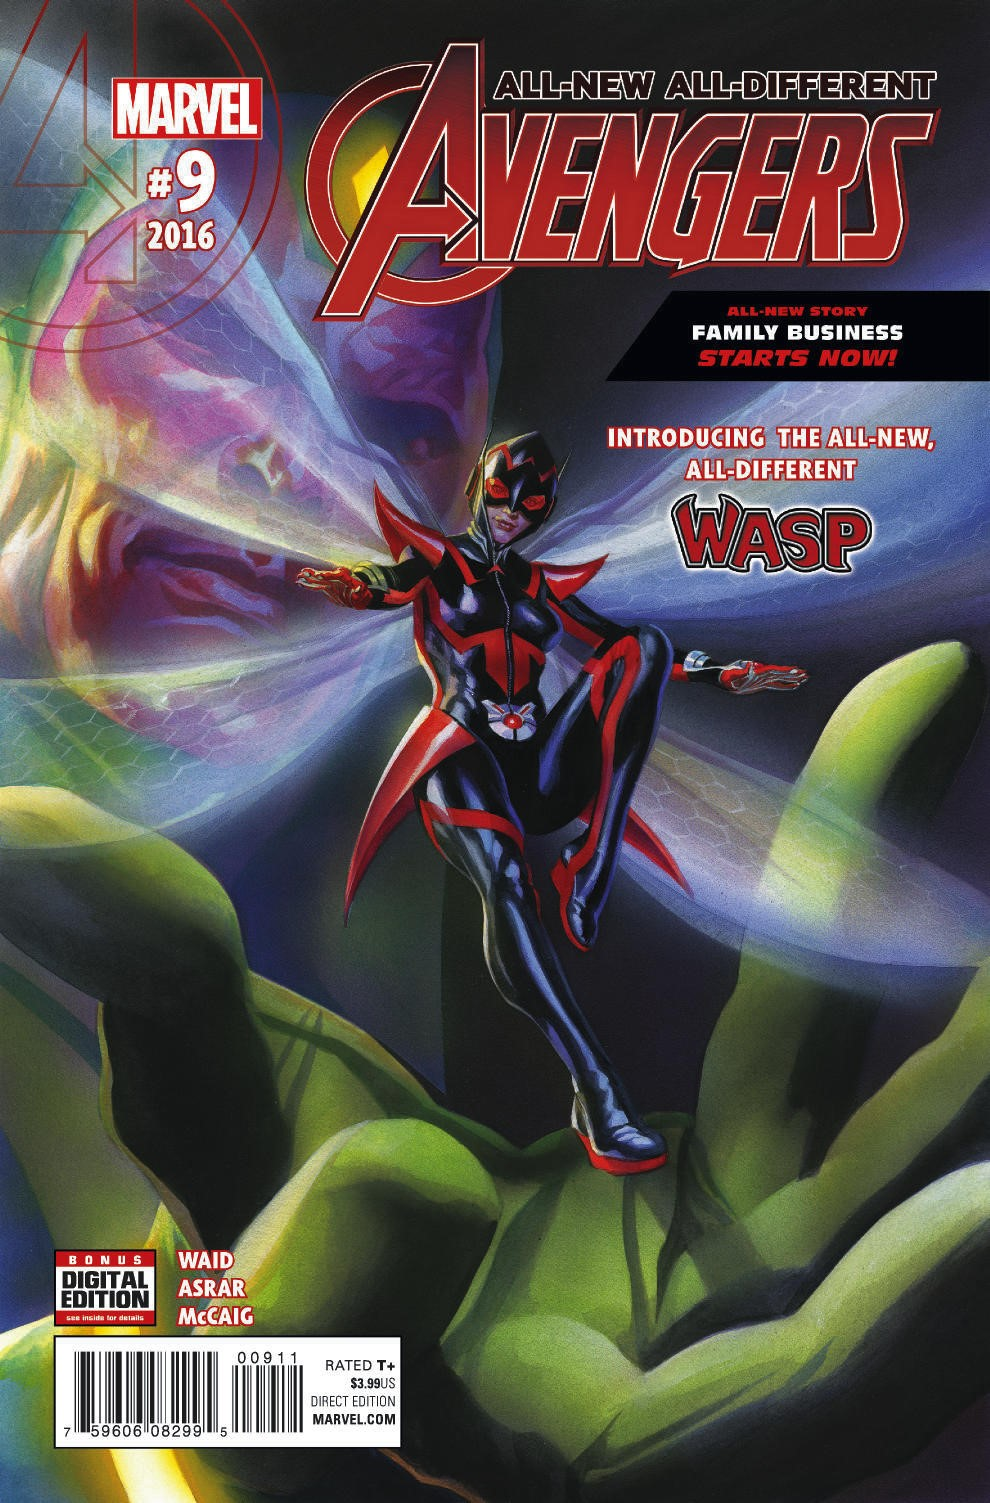 All New All Different Avengers Vol 1 2: Who Is The All-New All-Different Wasp?